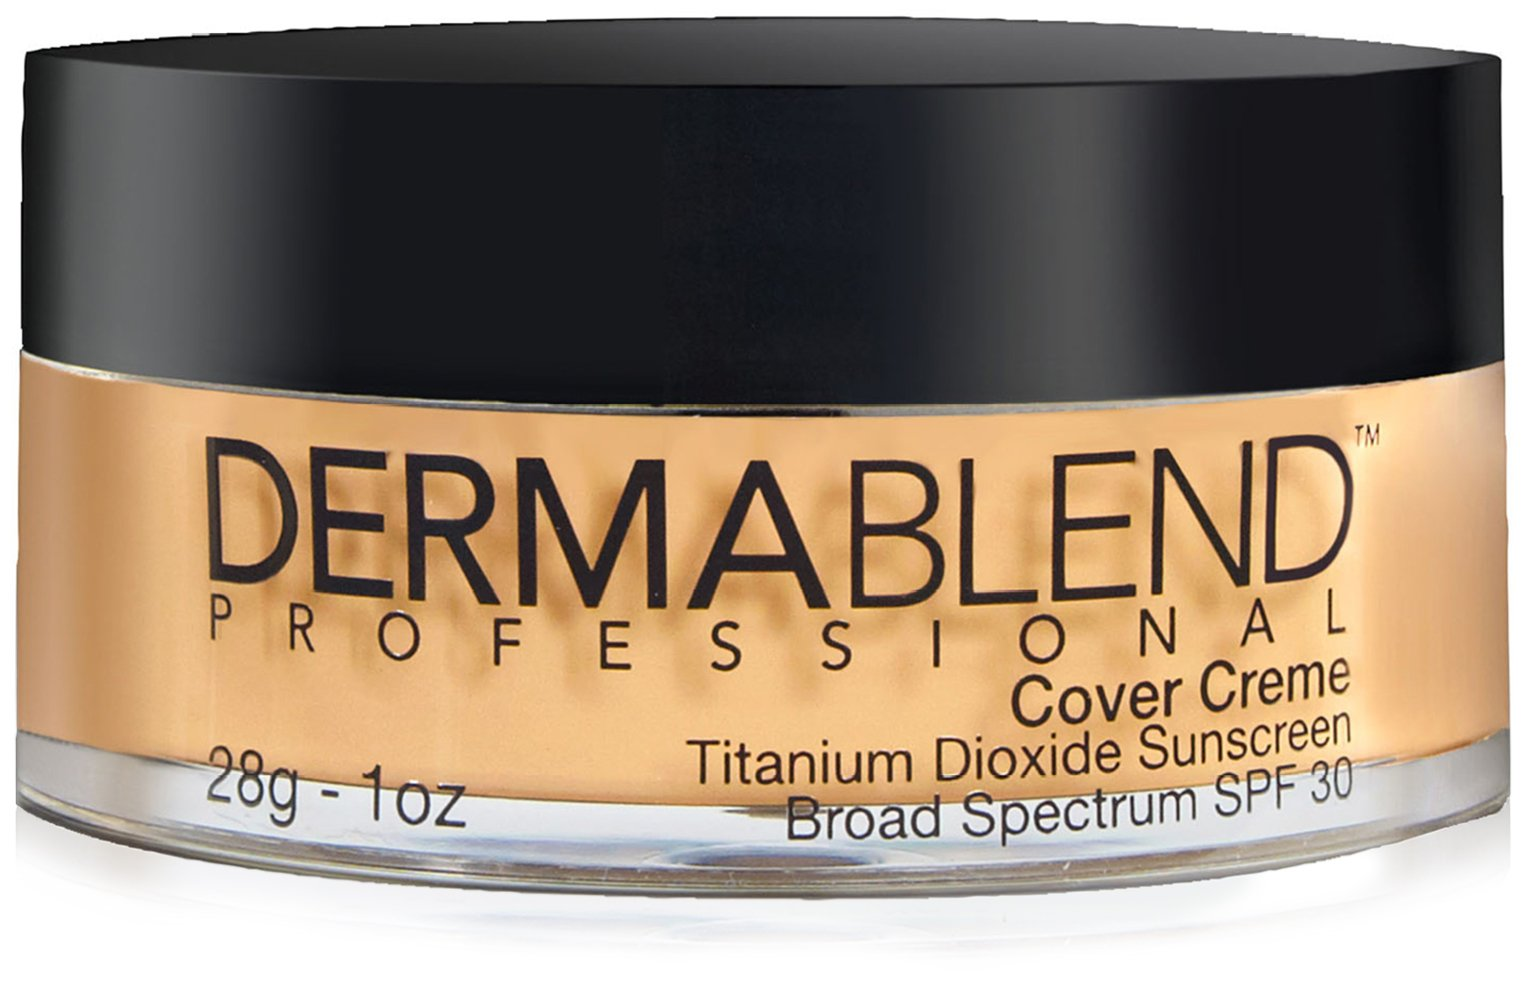 Dermablend Cover Creme High Coverage Foundation with SPF 30, 40N Golden Beige, 1 Oz.